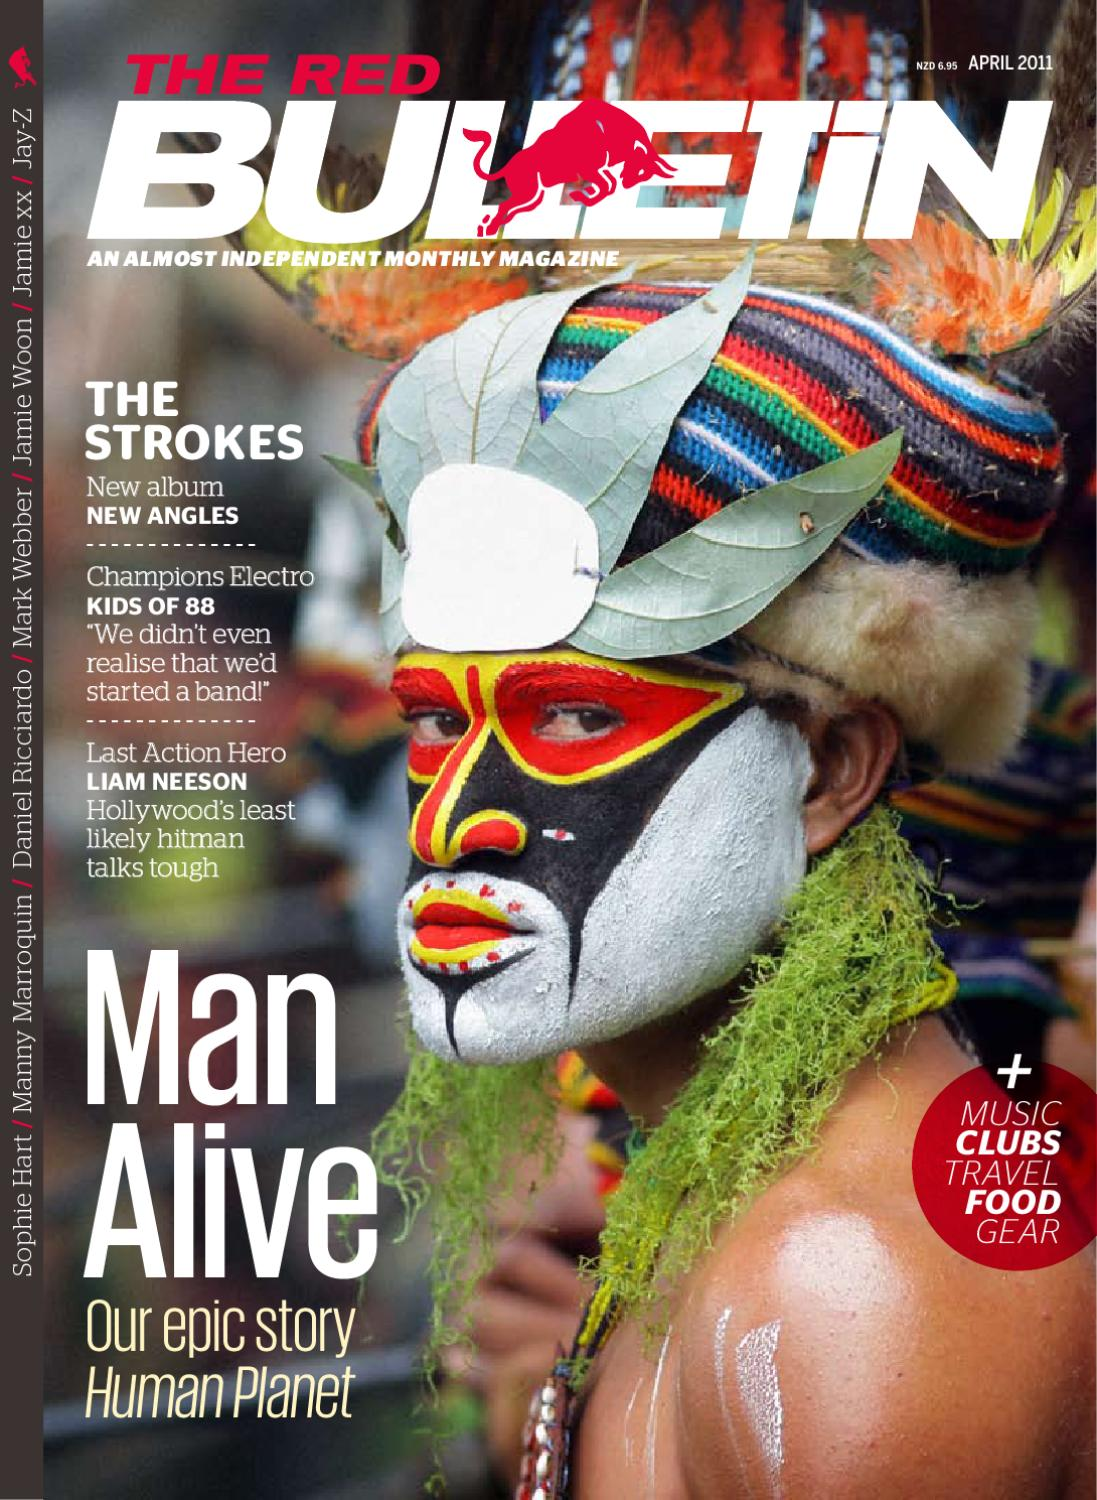 The Red Bulletin 0411 Nz By Red Bull Media House Issuu